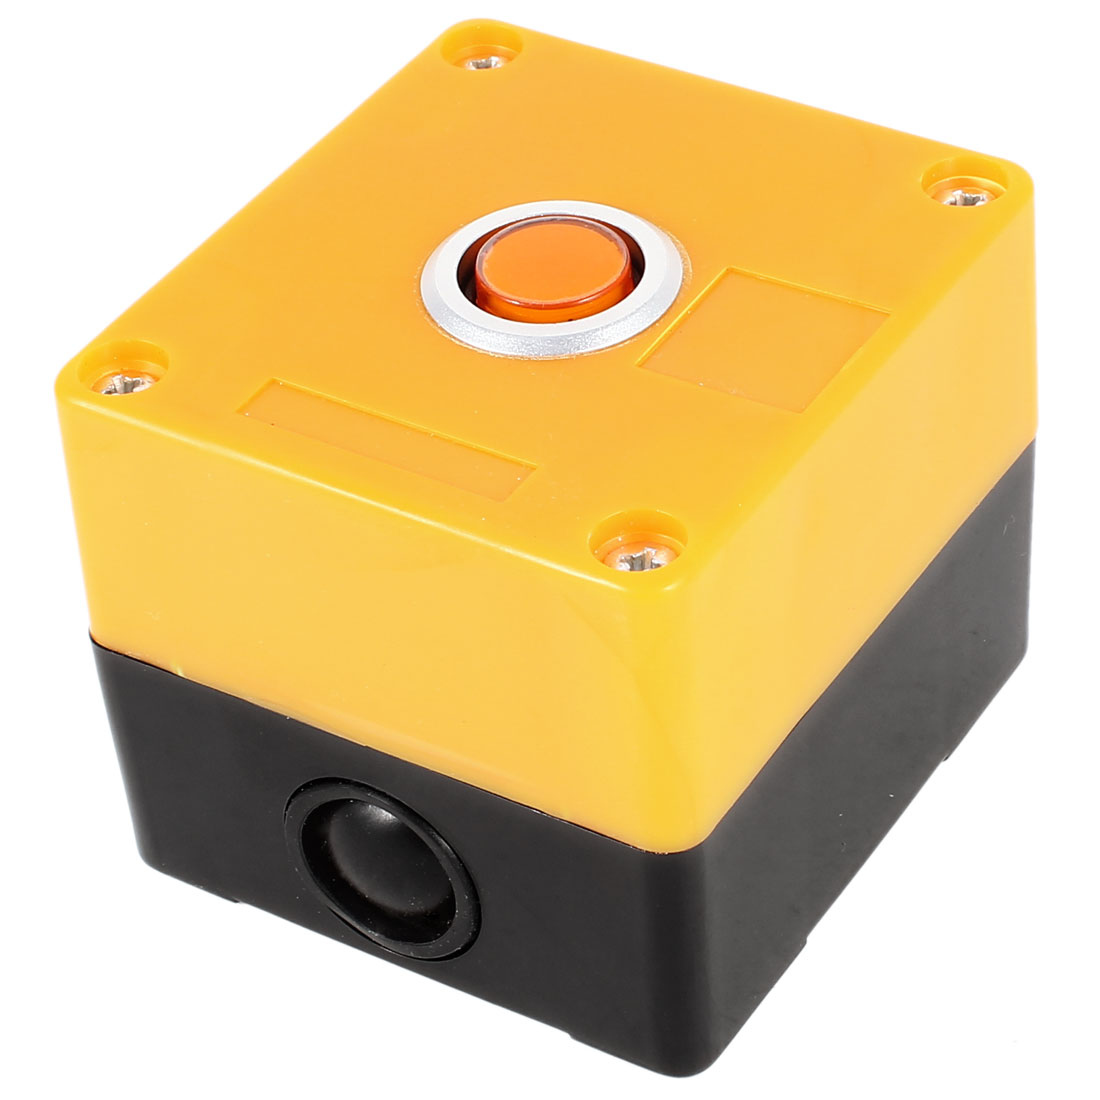 AC 220V 5A SPDT 1 NO 1 NC 3 Pin Soldering Momentary Type Orange Button Plastic Pushbutton Control Station Box Black Yellow